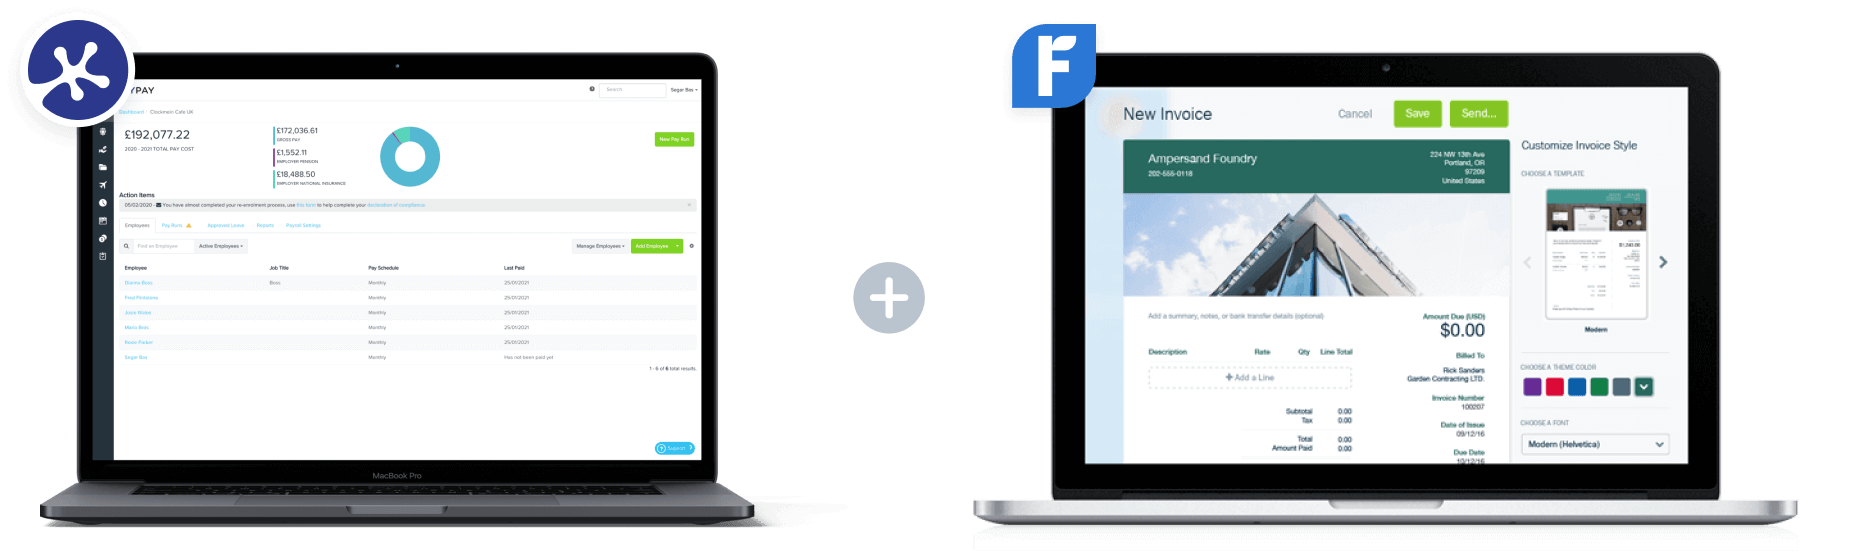 KeyPay and FreshBooks dashboards